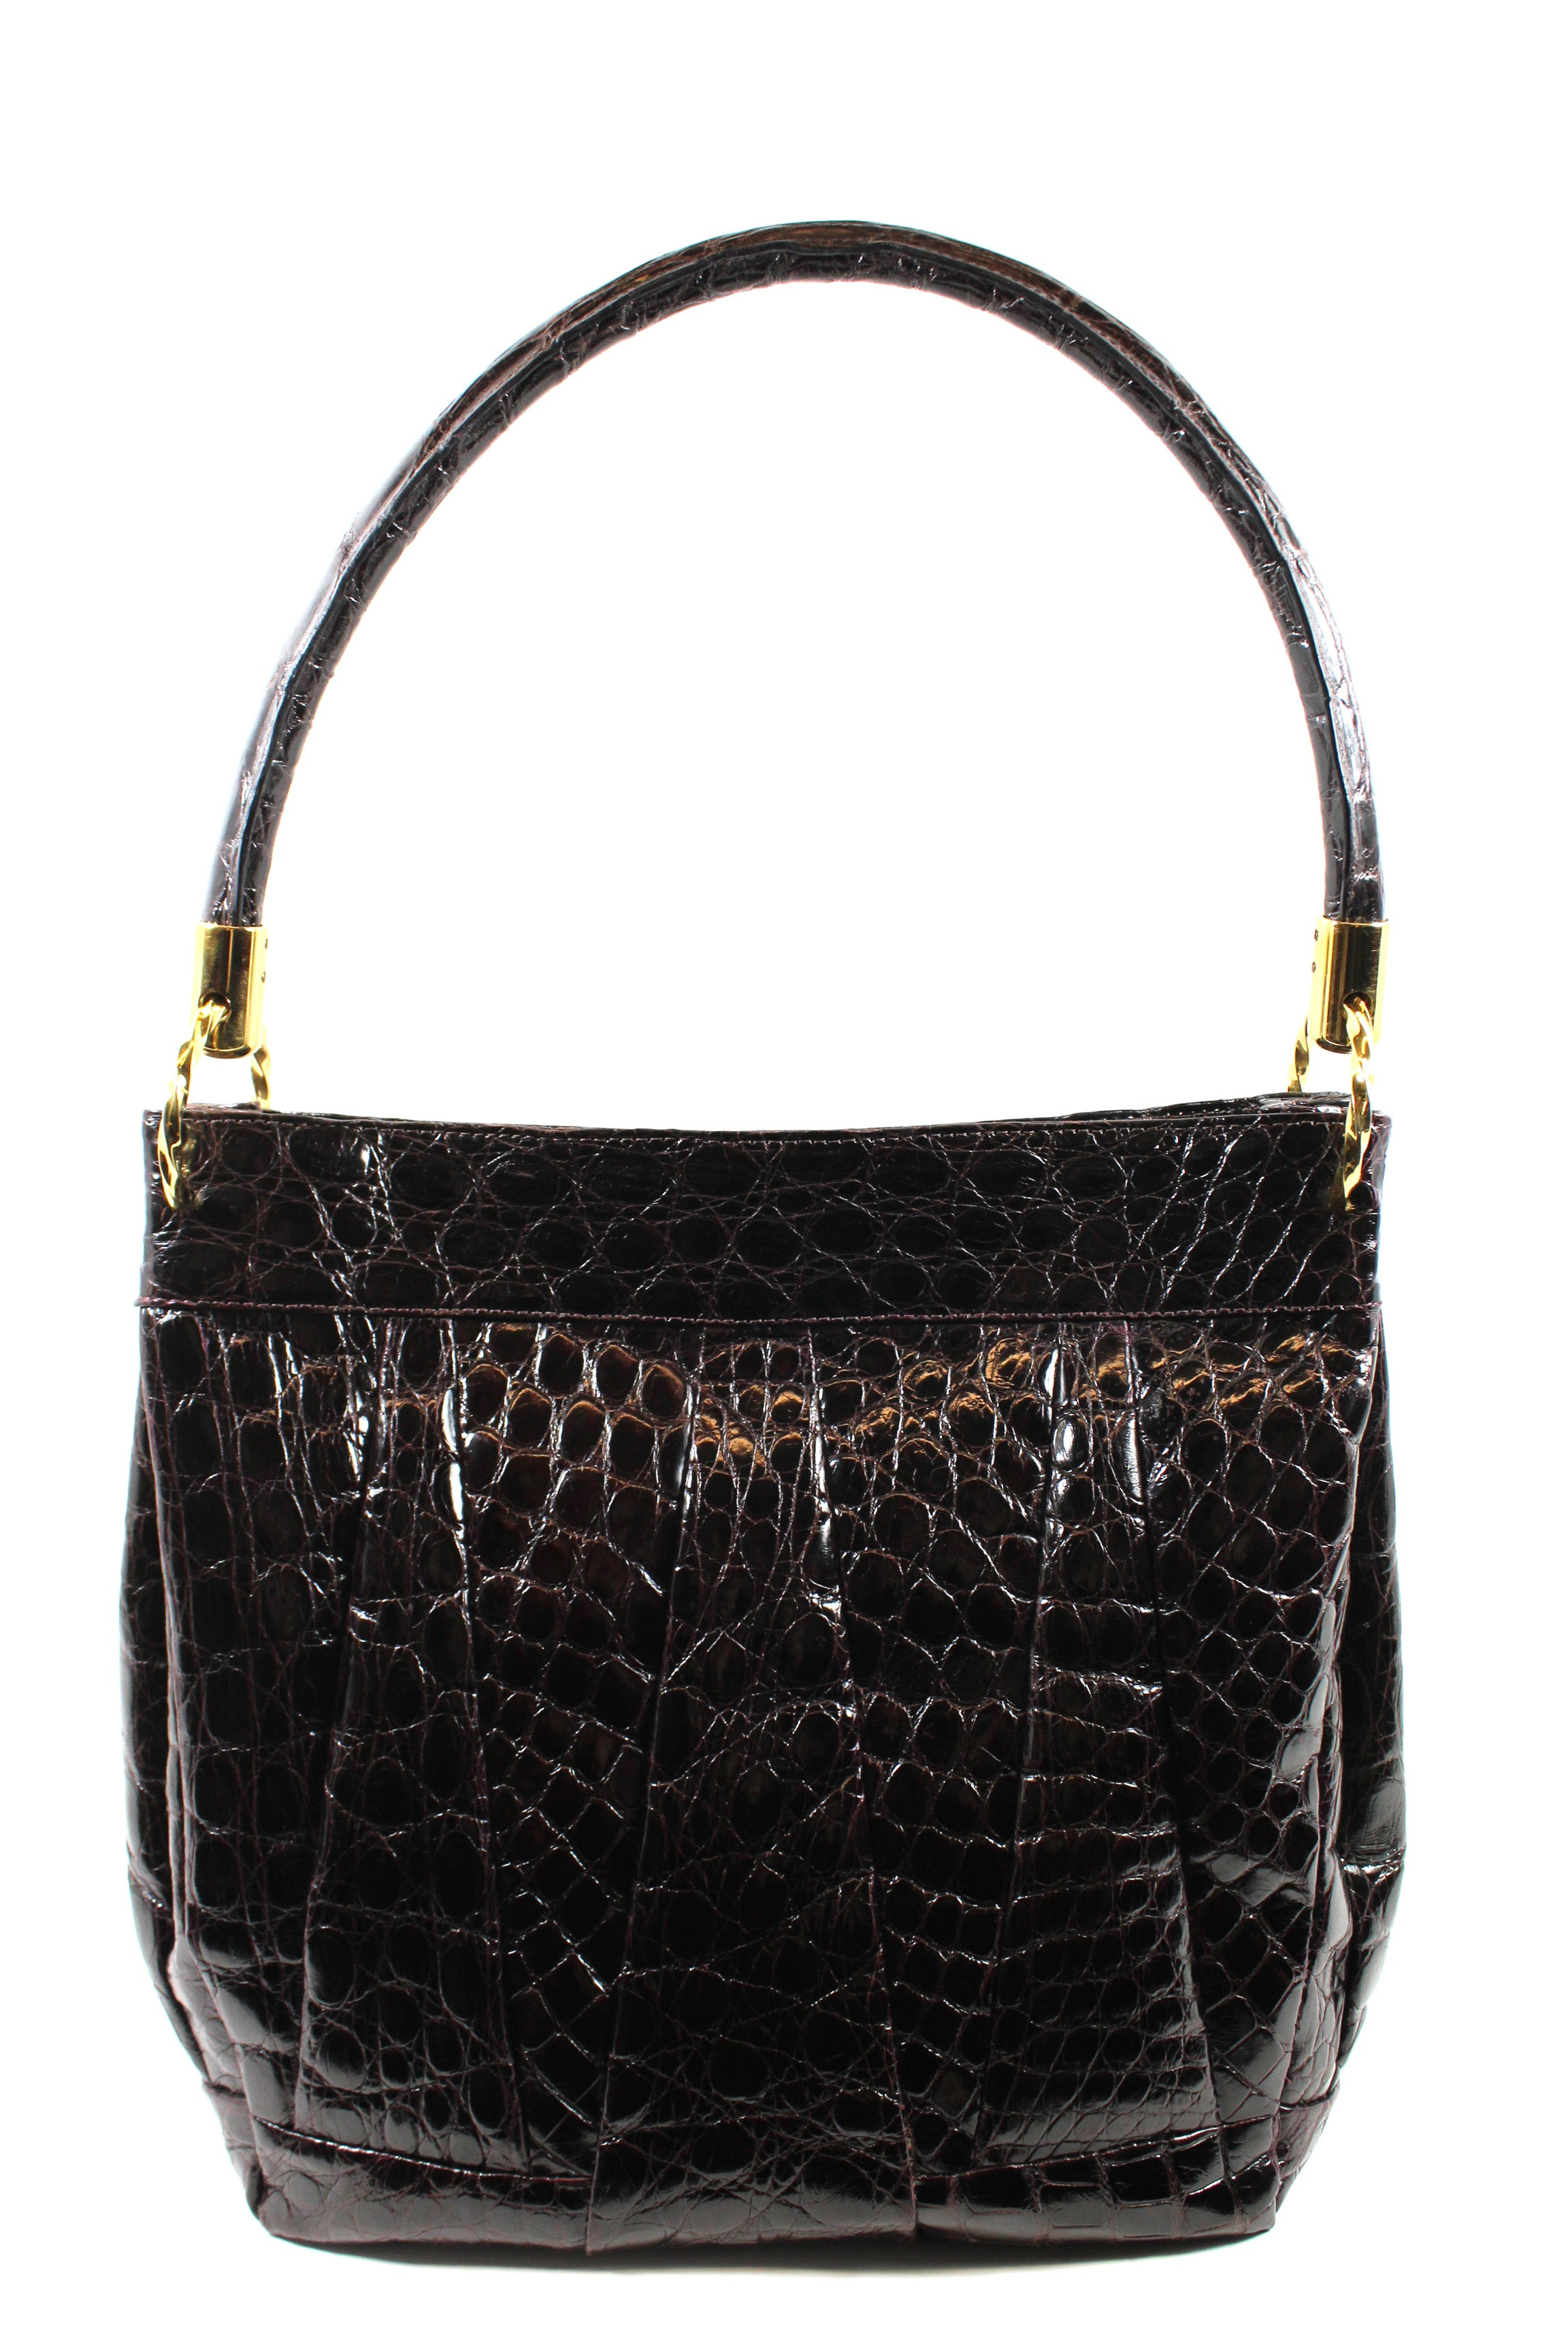 Domenico Vacca Dark Brown Alligator Shoulder Bag